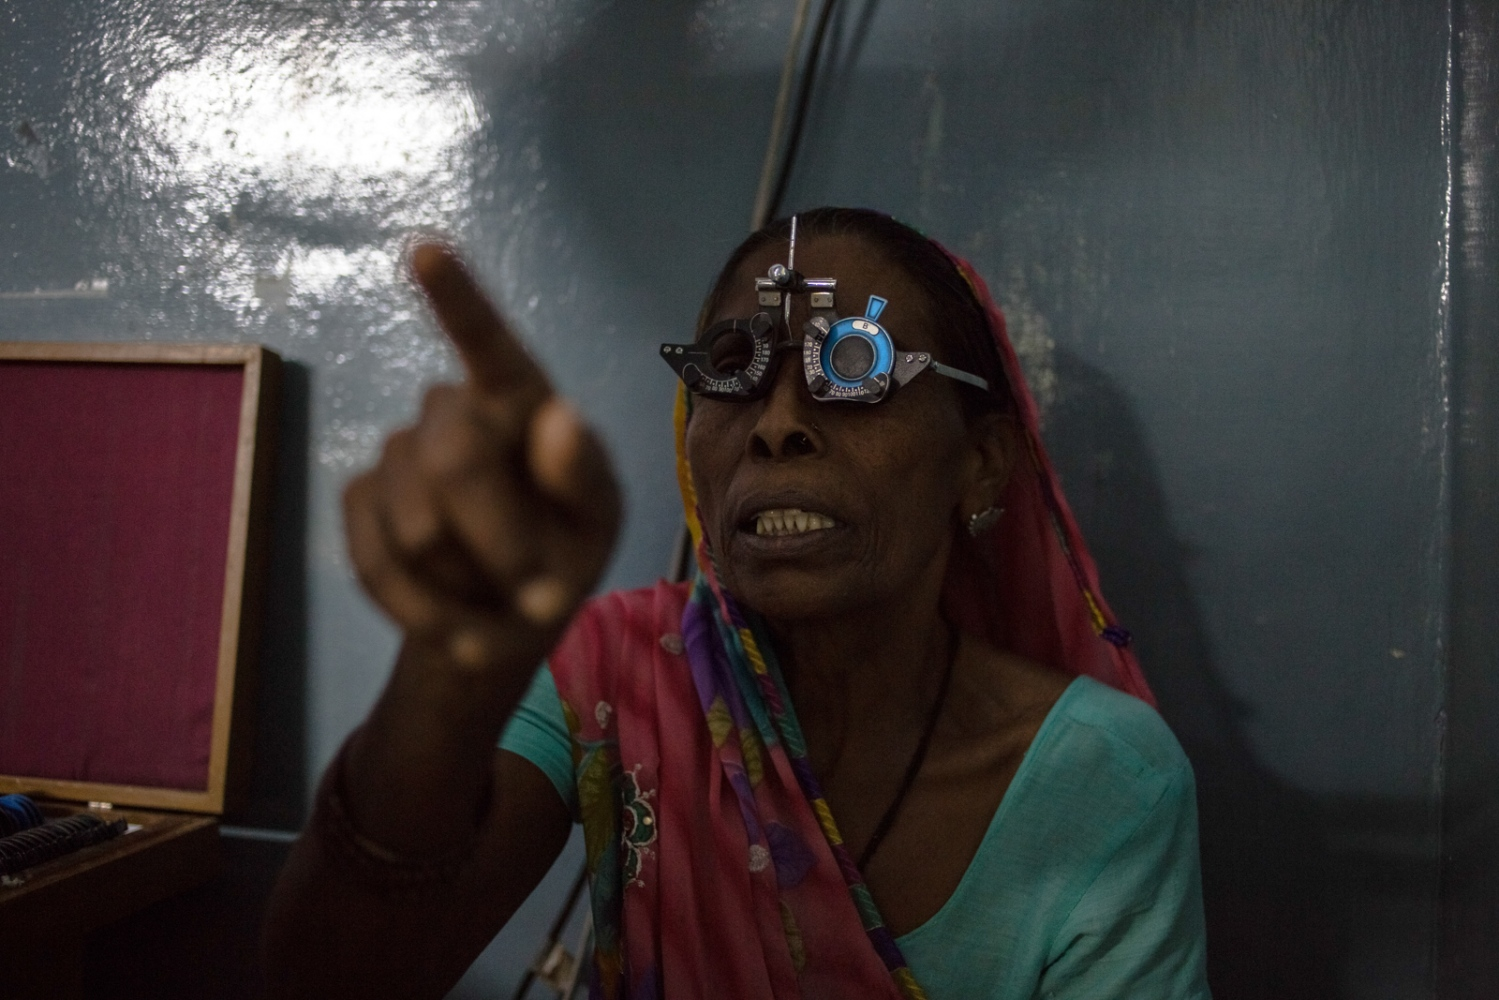 Indian patient Somoti, 65, and who goes by one name, gestures as she reads letters from a screen during an eye examination at the Dr Shroff Charity Eye Hospital Vision Centre in Malakhera village, some 30 kms from Alwar in the state of Rajasthan on August 13, 2014.